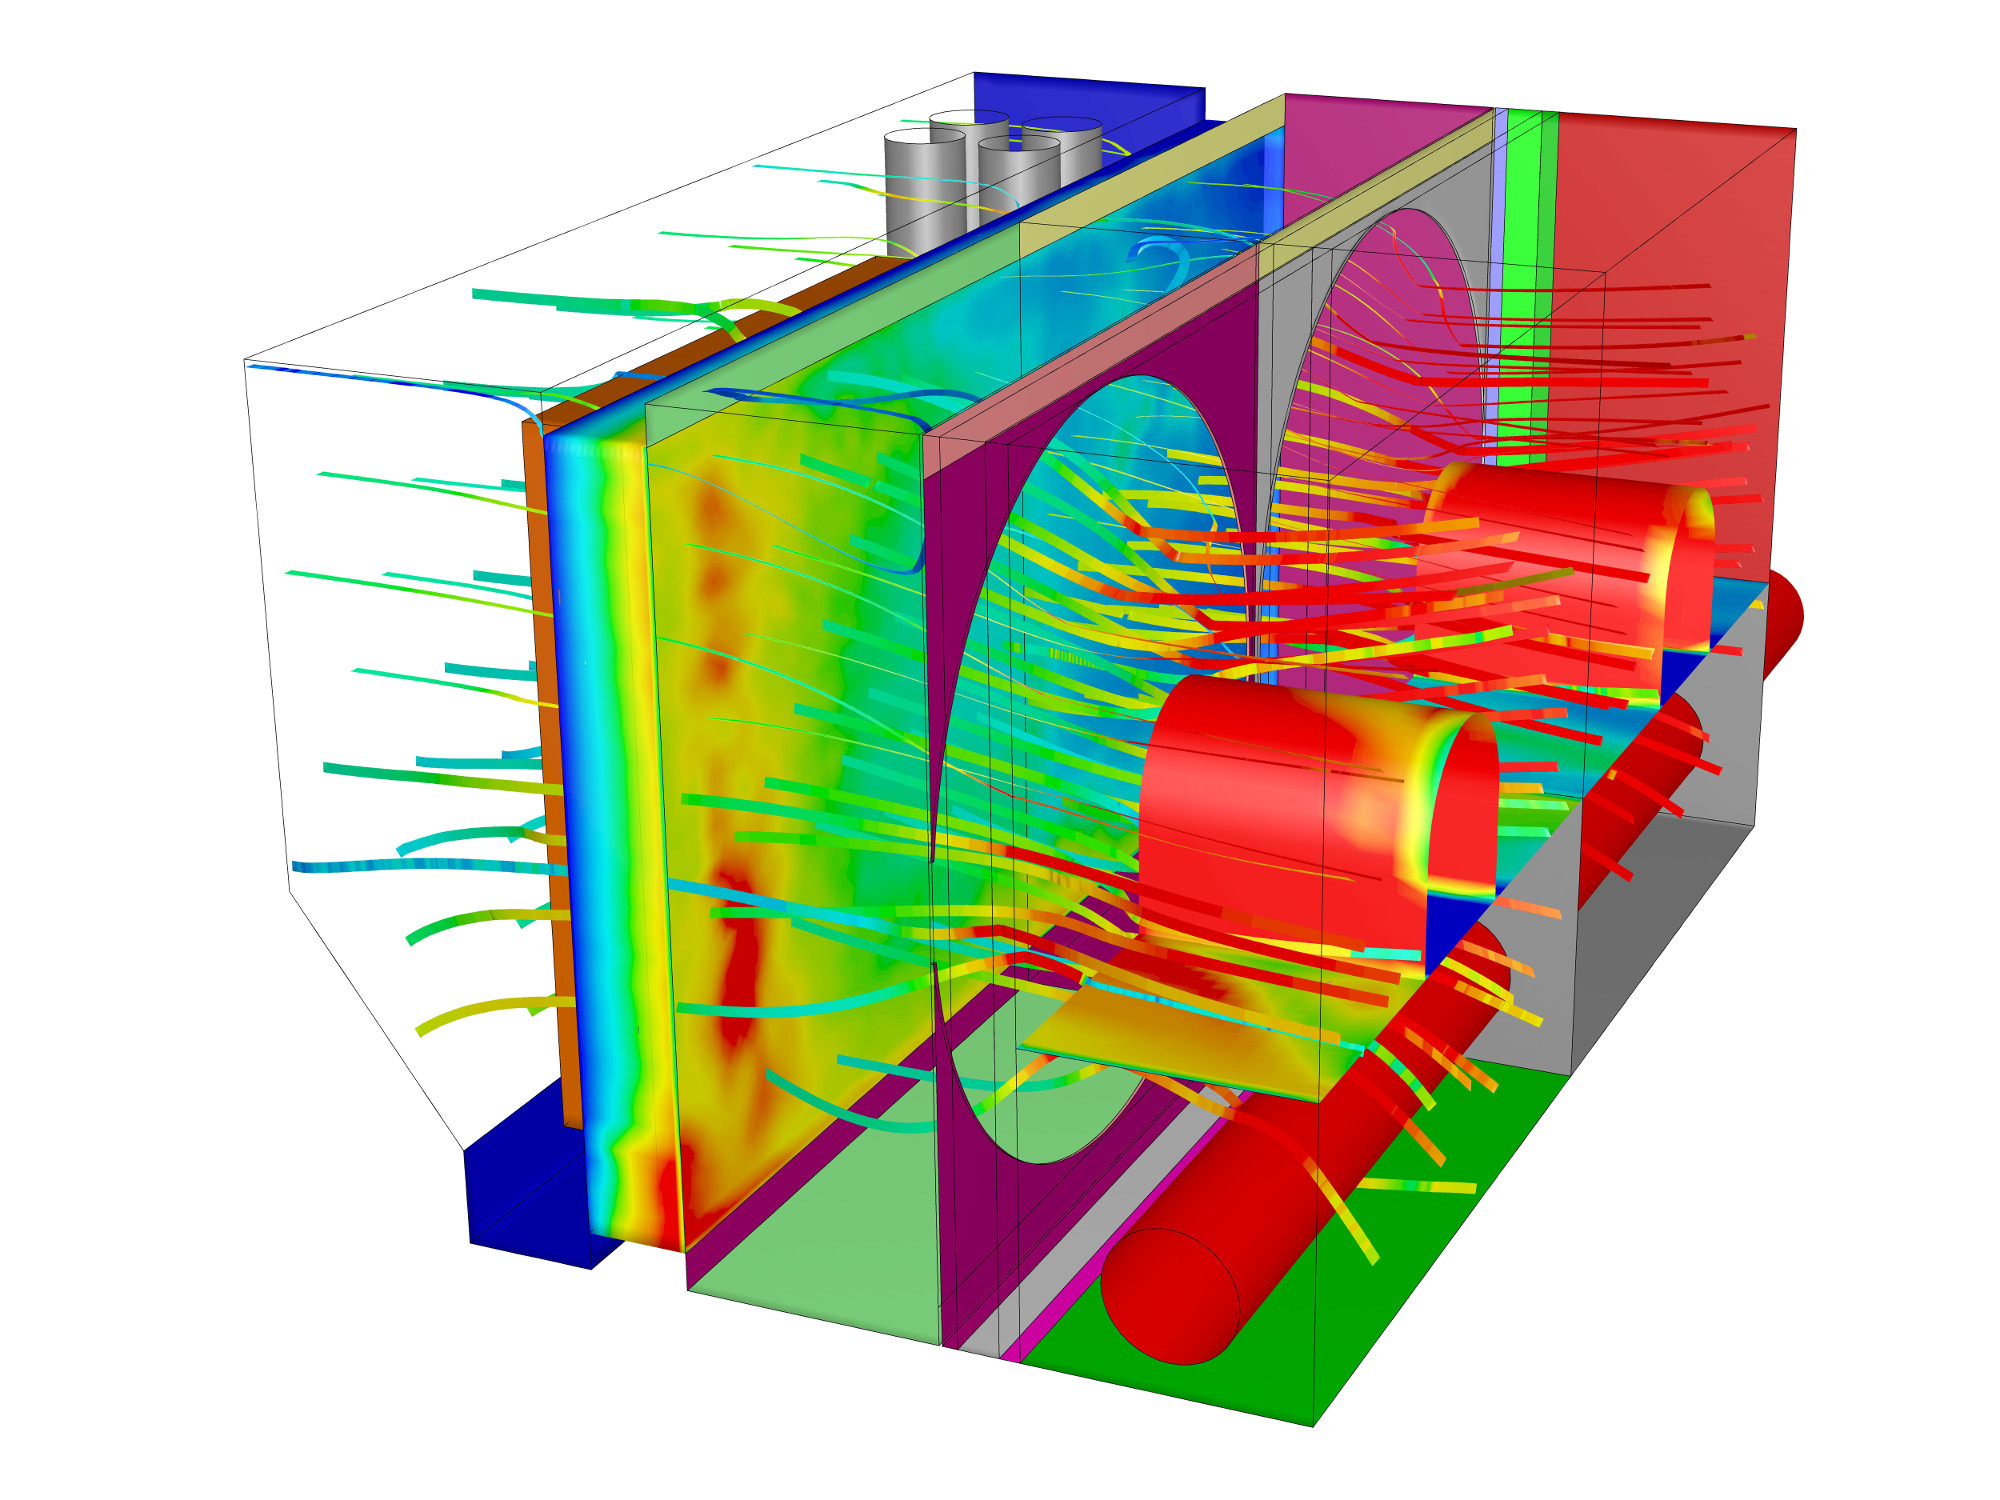 Charge air cooler intercooler CFD